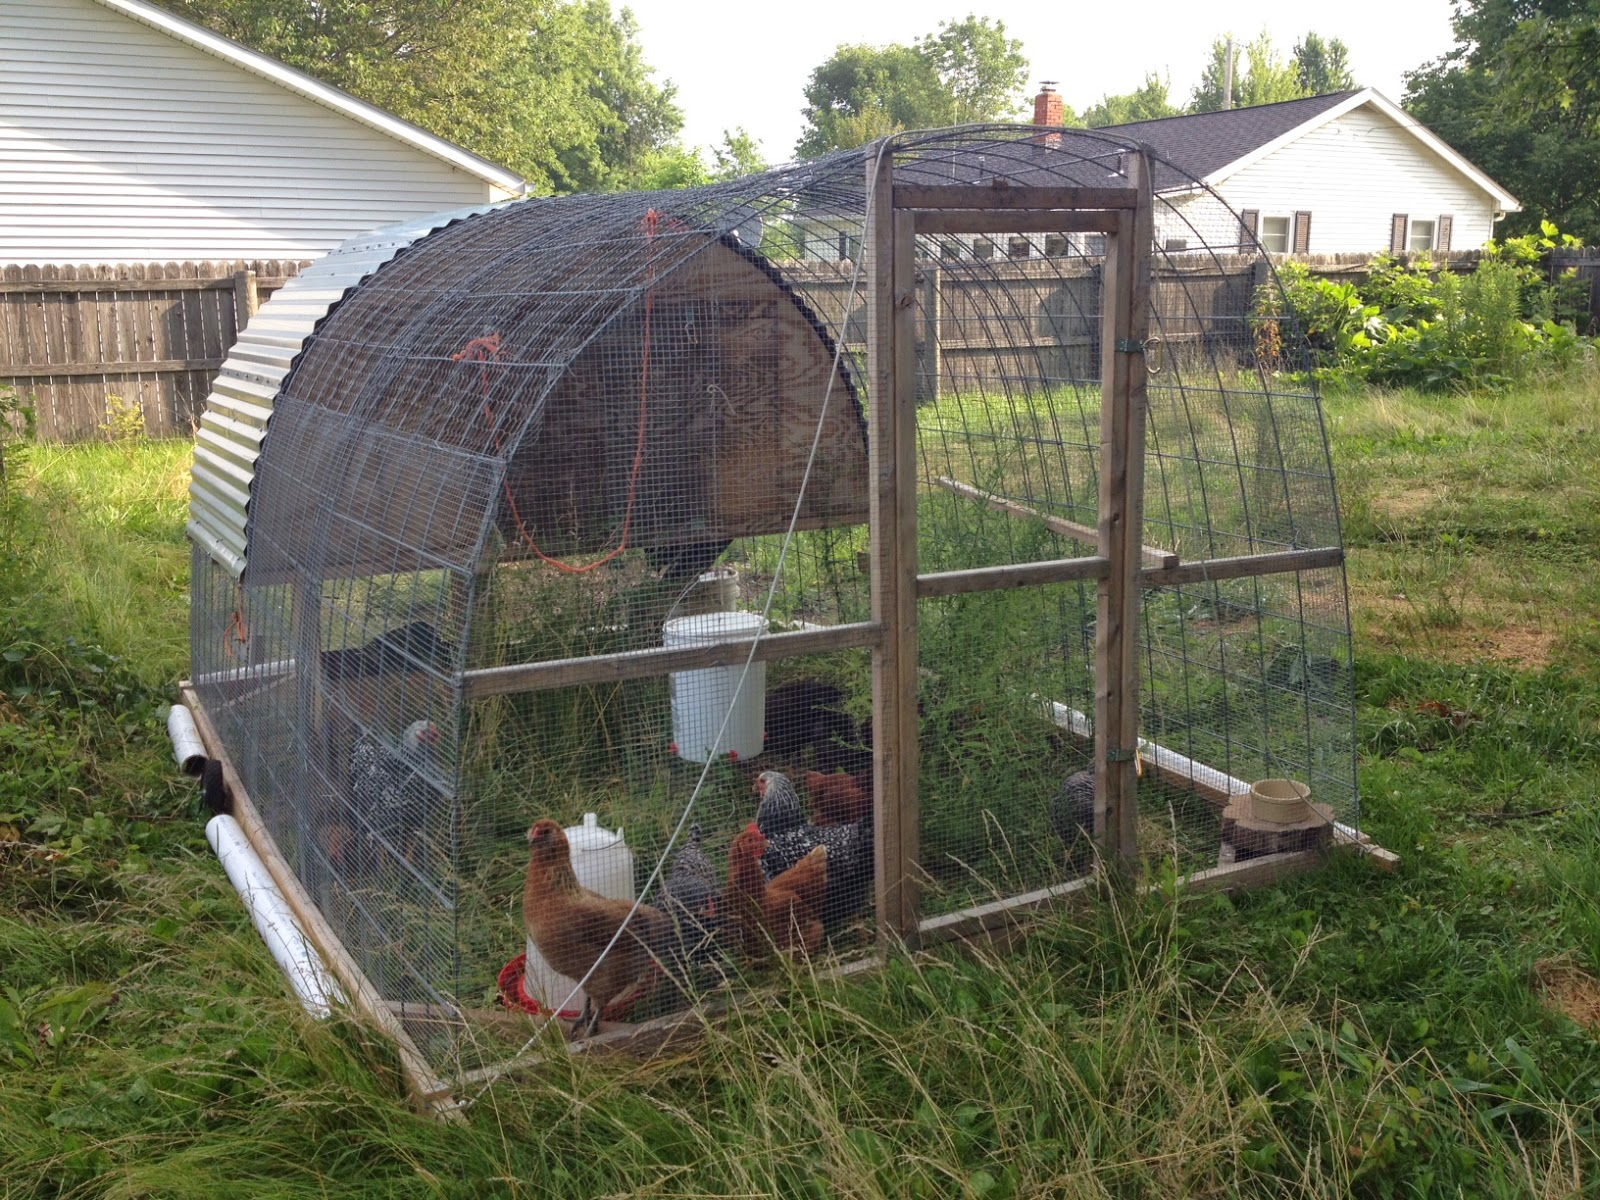 Little country house diy chicken tractor for Pvc chicken tractor plans